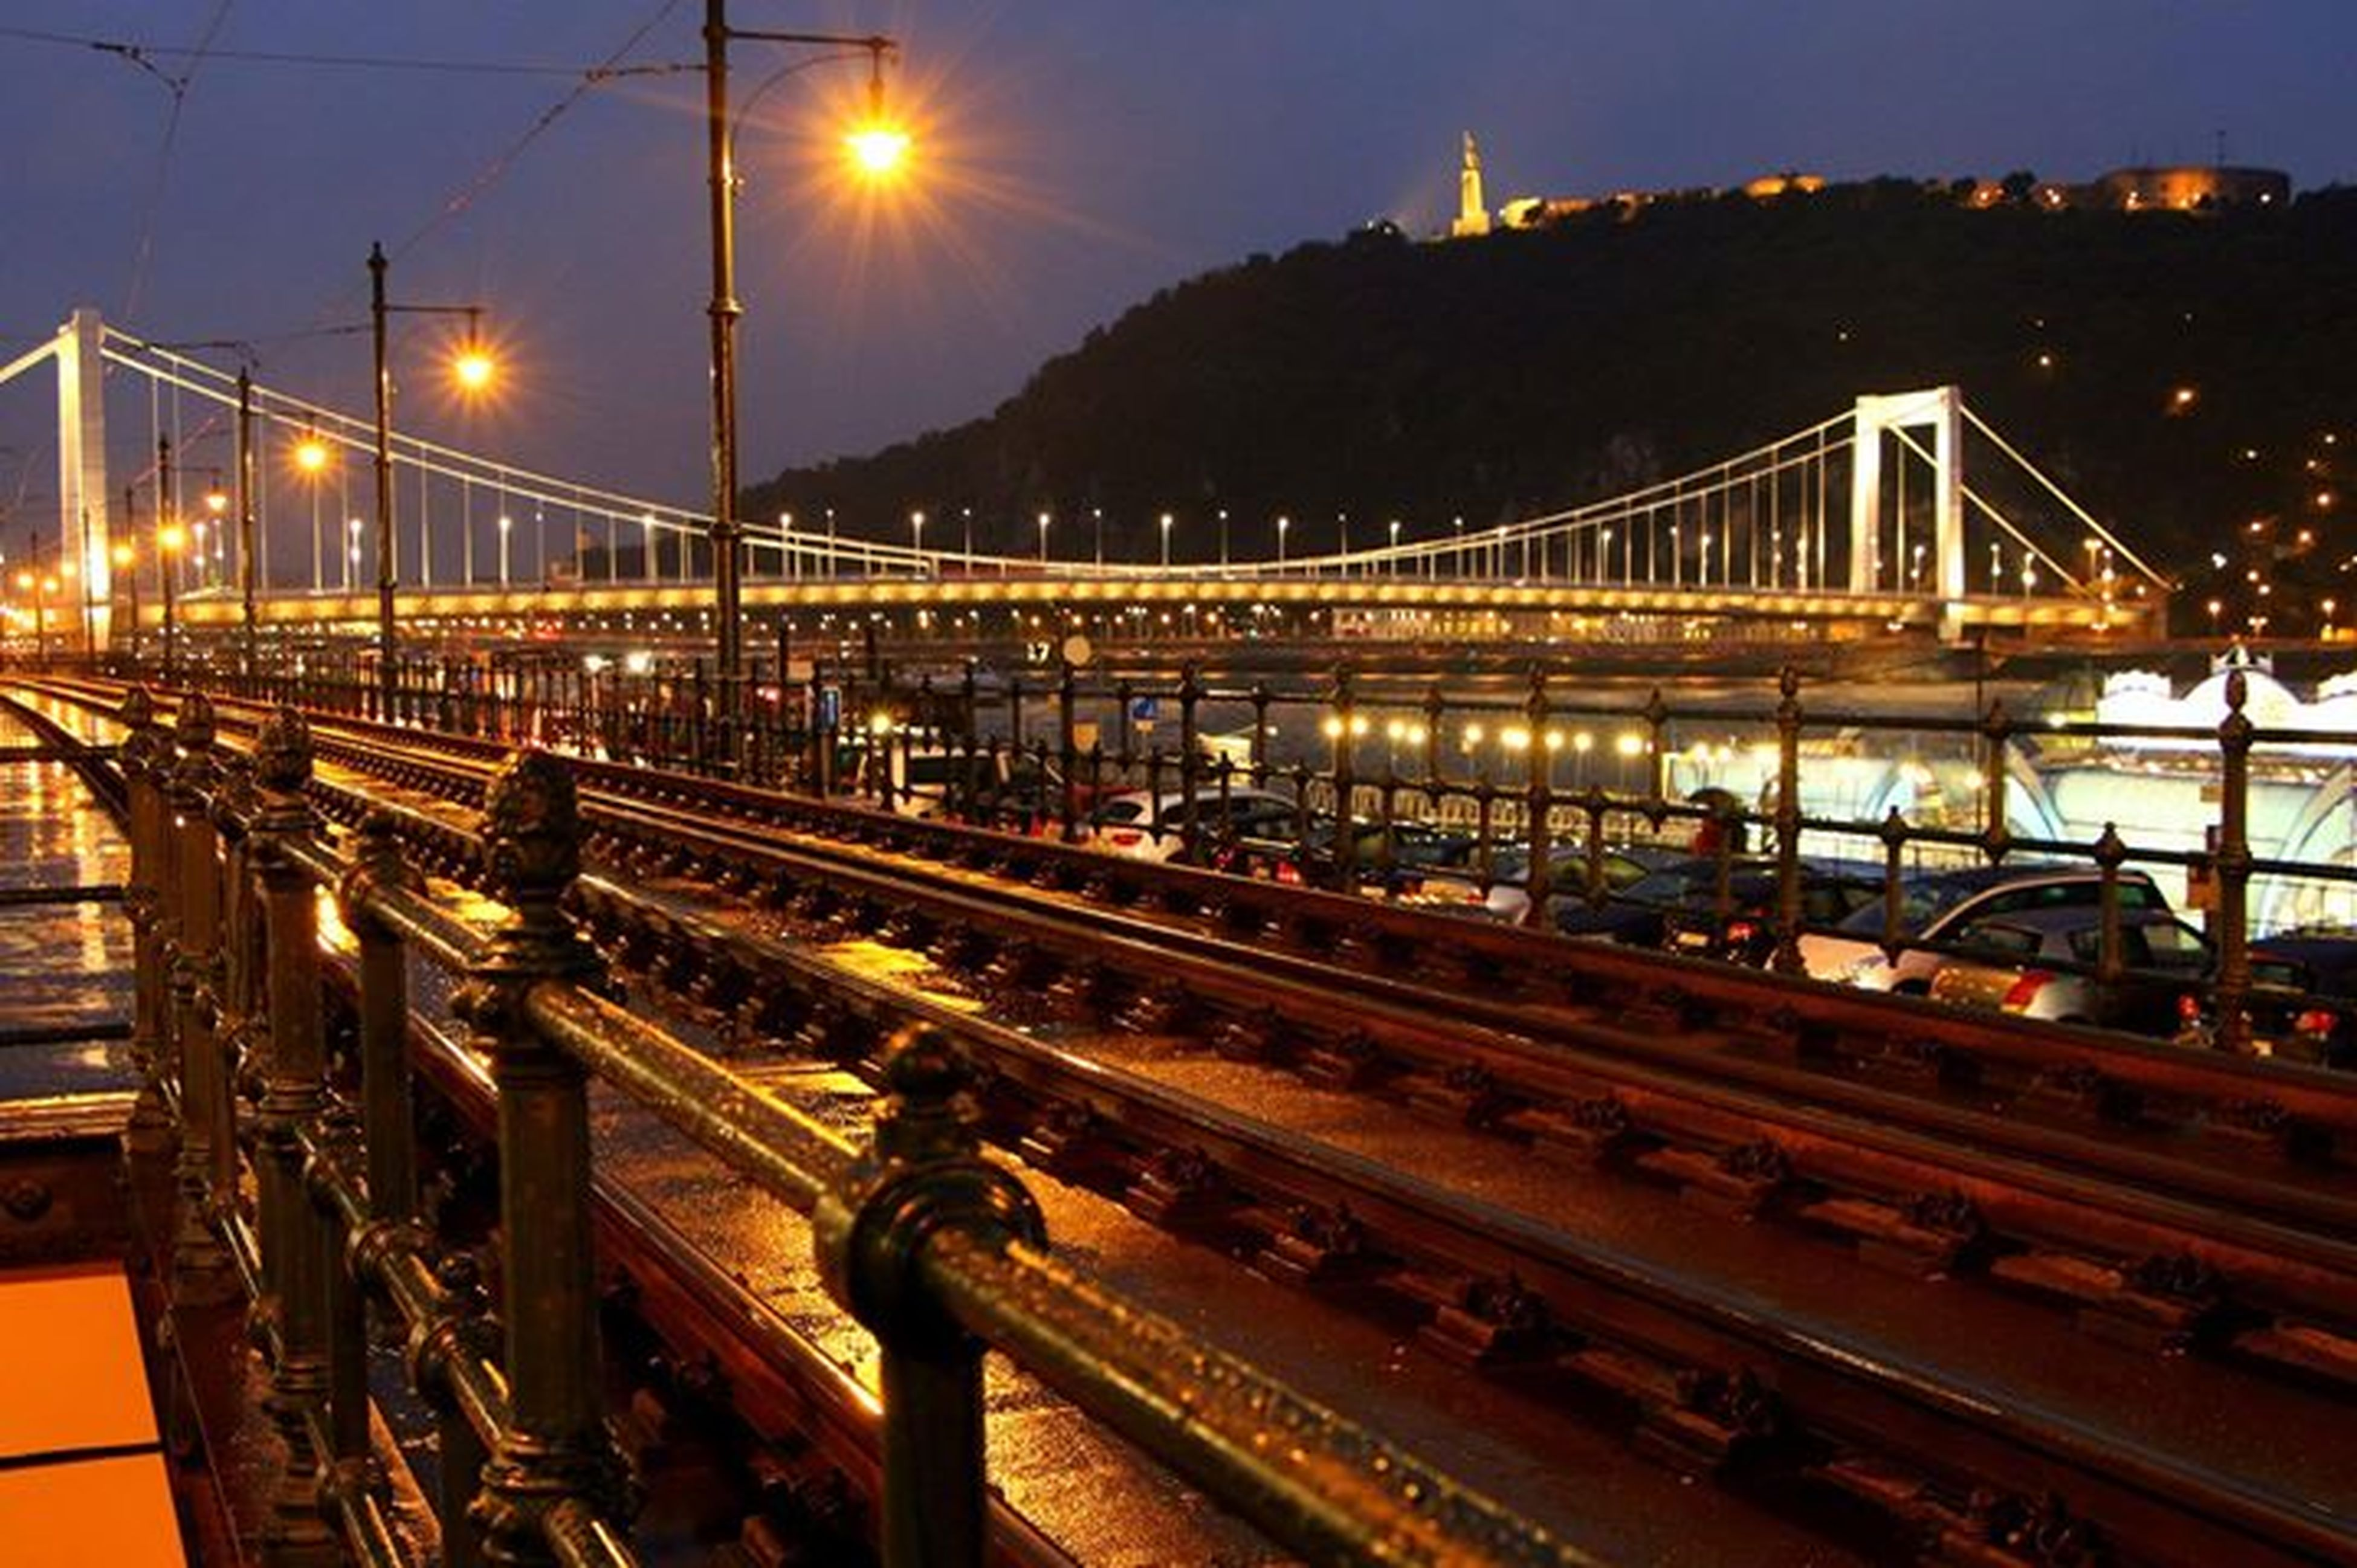 illuminated, transportation, night, street light, railroad track, mode of transport, built structure, rail transportation, public transportation, architecture, sky, connection, lighting equipment, bridge - man made structure, train - vehicle, city, outdoors, building exterior, land vehicle, travel